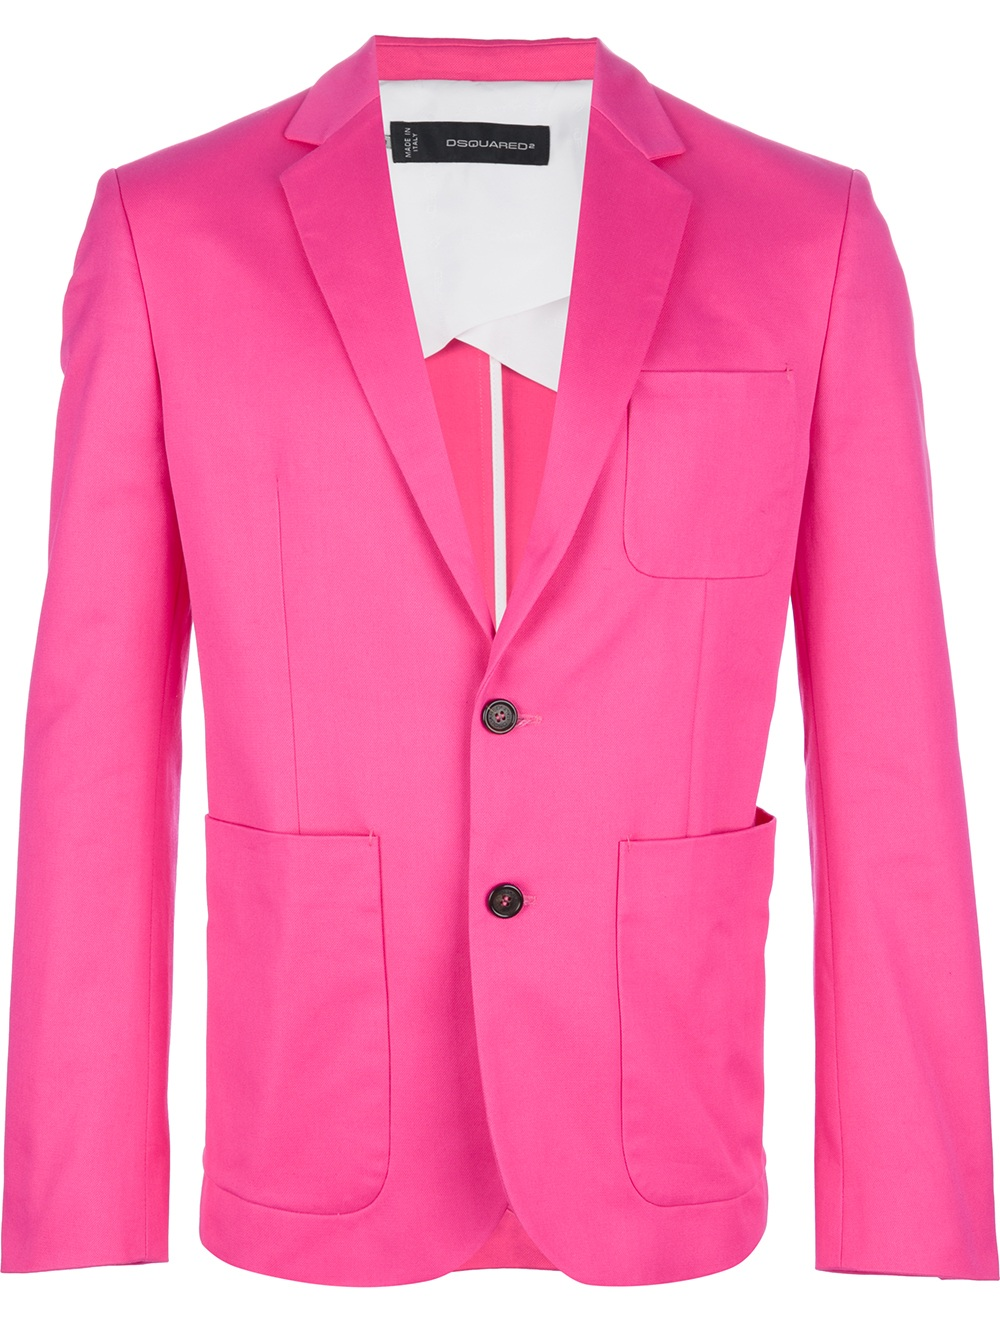 Dsquared² Classic Blazer in Pink for Men